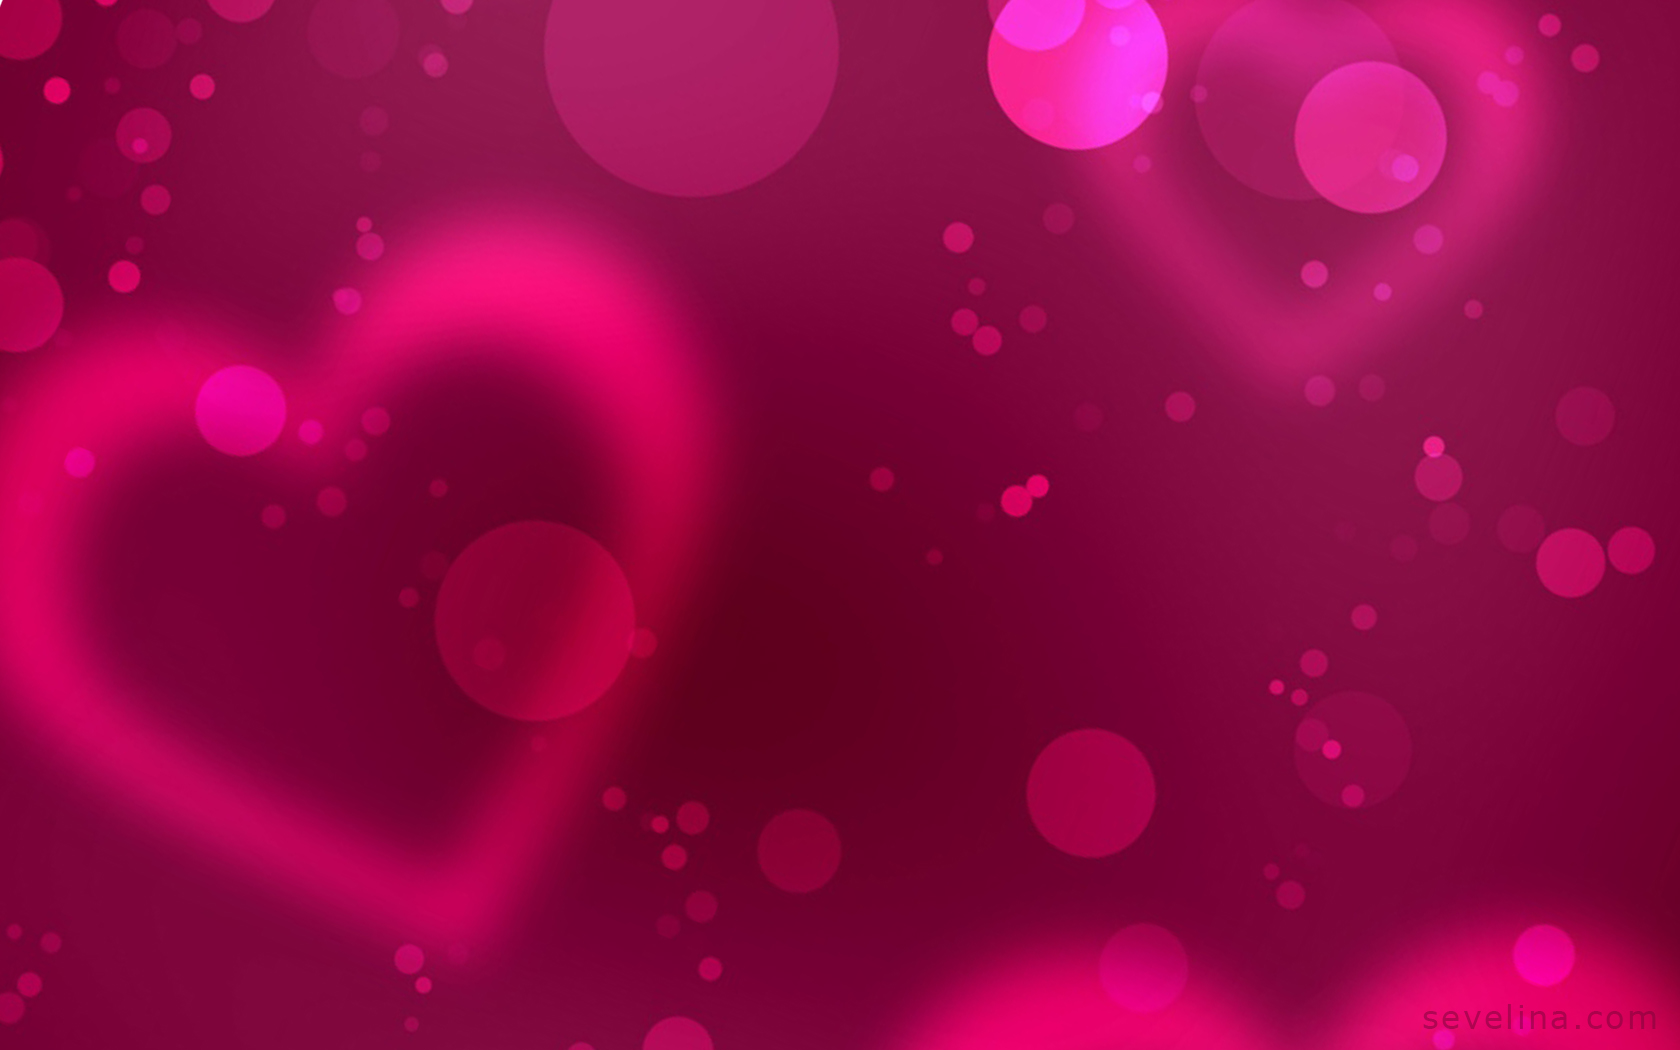 Cute Small Girl Wallpaper Download Top 14 Amazing Valentines Day Wallpaper 2014 Sevelina